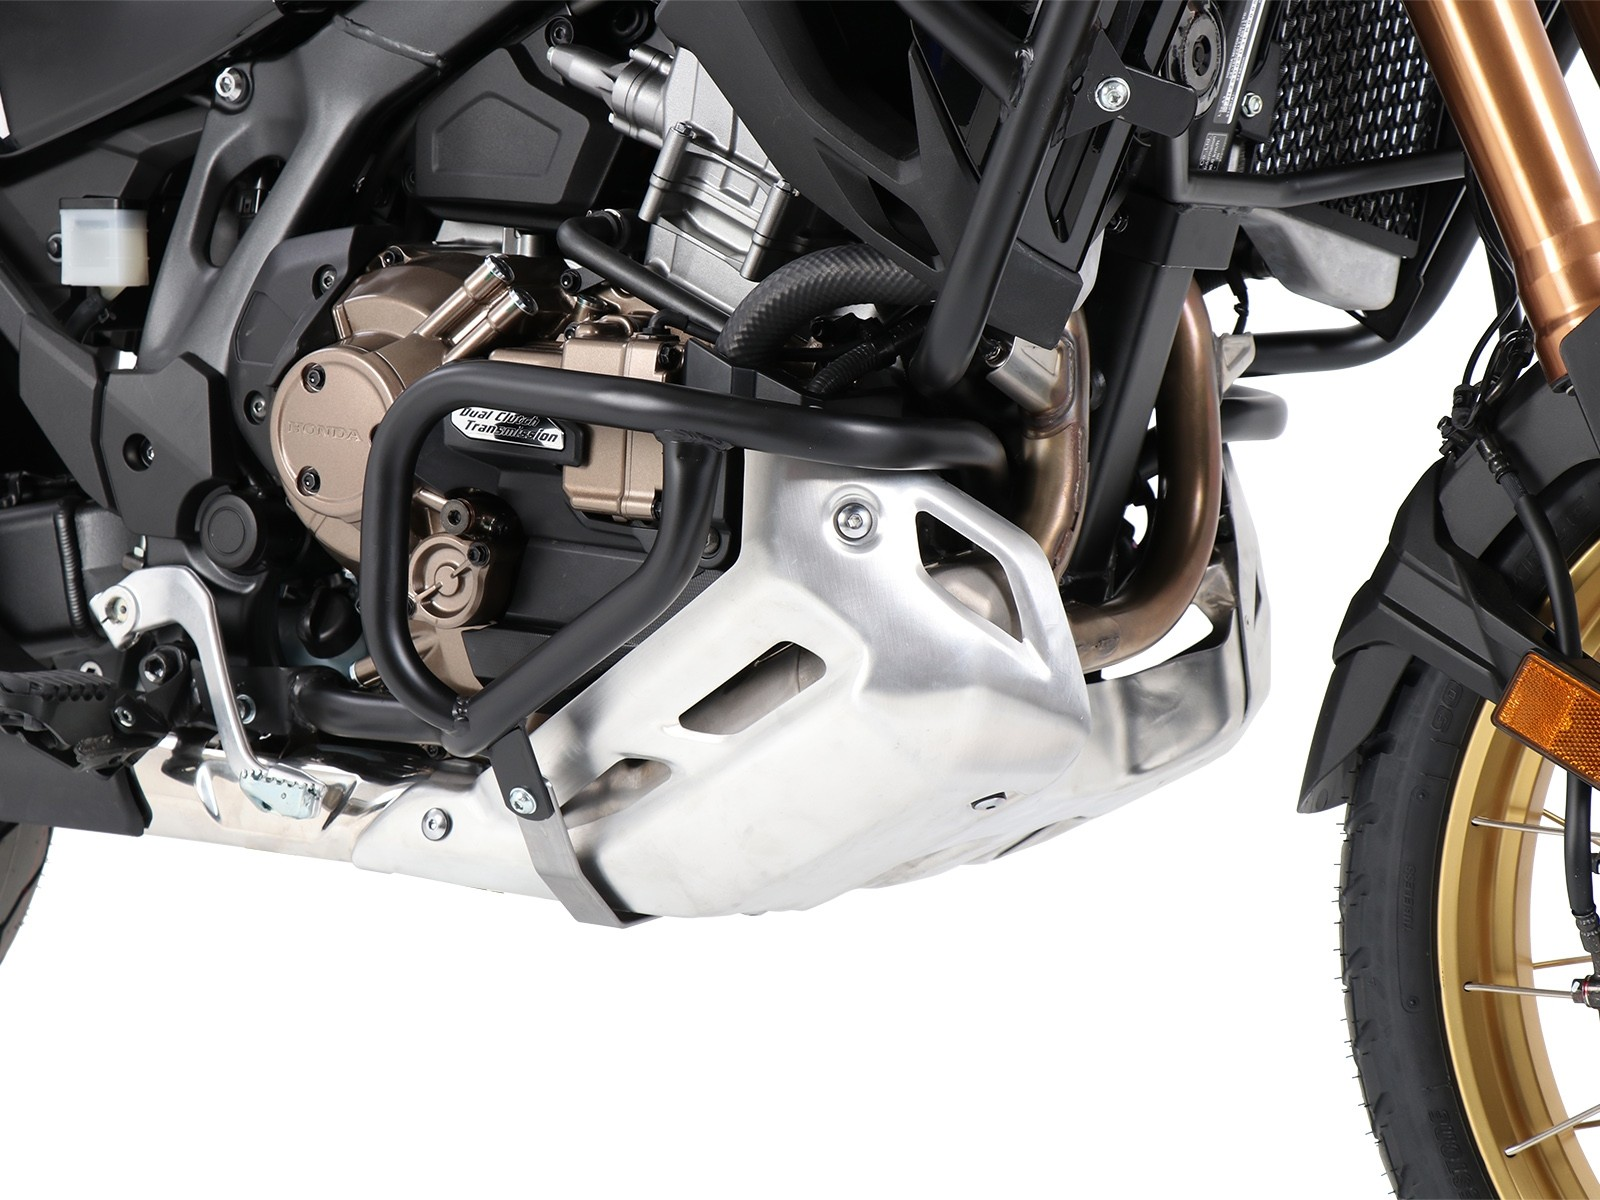 Hepco Lower Engine Protection Honda CRF 1100 L Africa Twin Adventure Sports  2020--Black